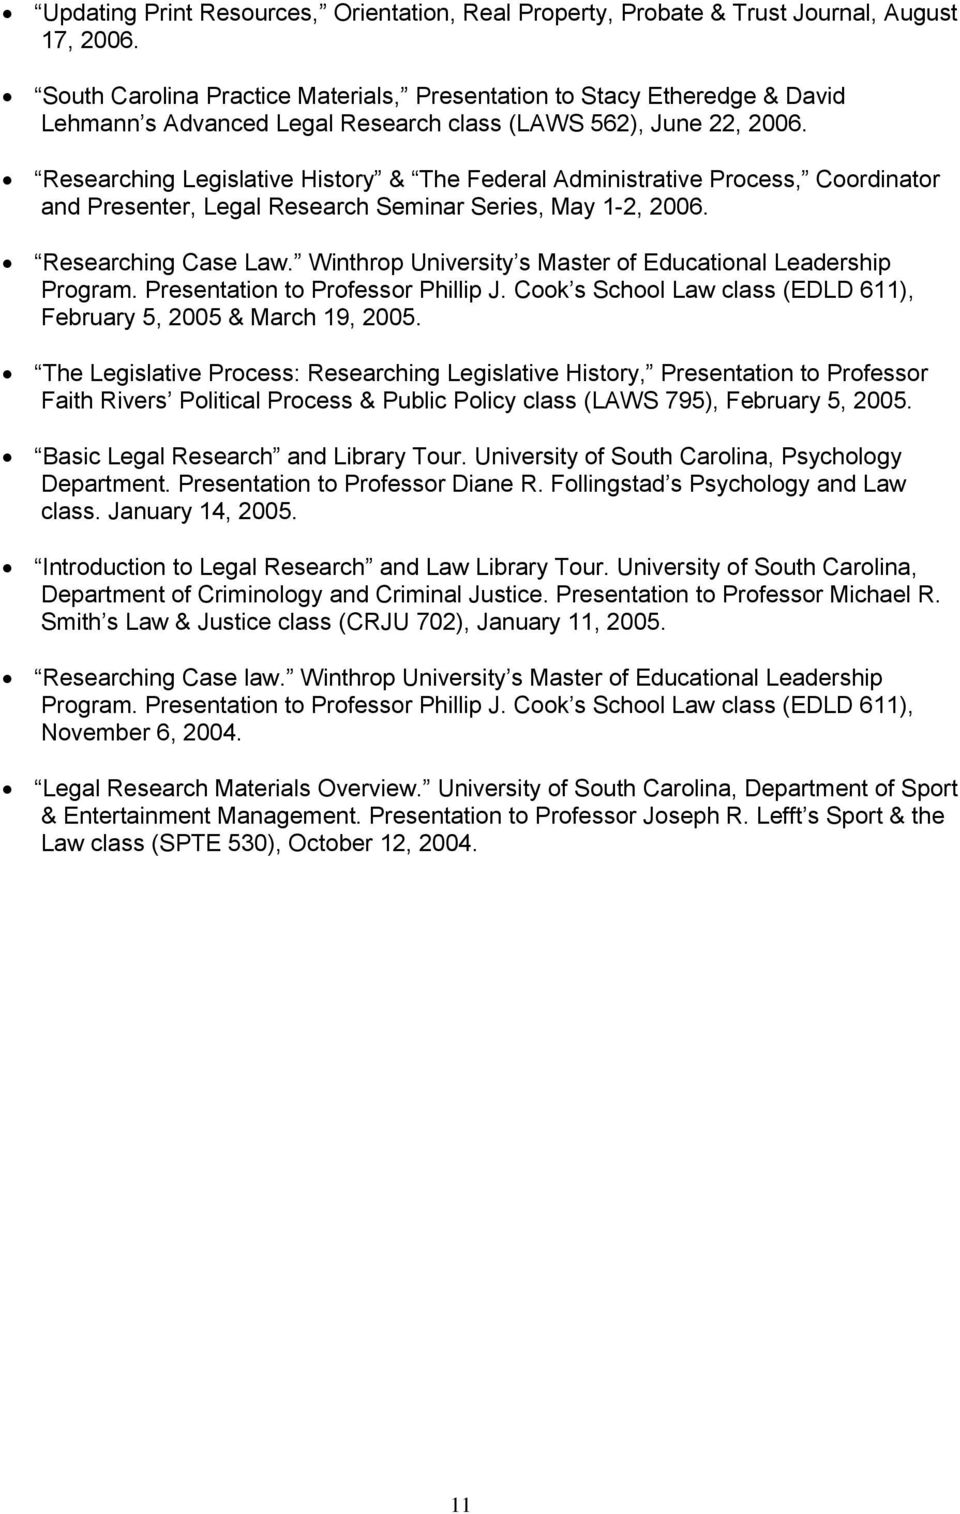 Researching Legislative History & The Federal Administrative Process, Coordinator and Presenter, Legal Research Seminar Series, May 1-2, 2006. Researching Case Law.